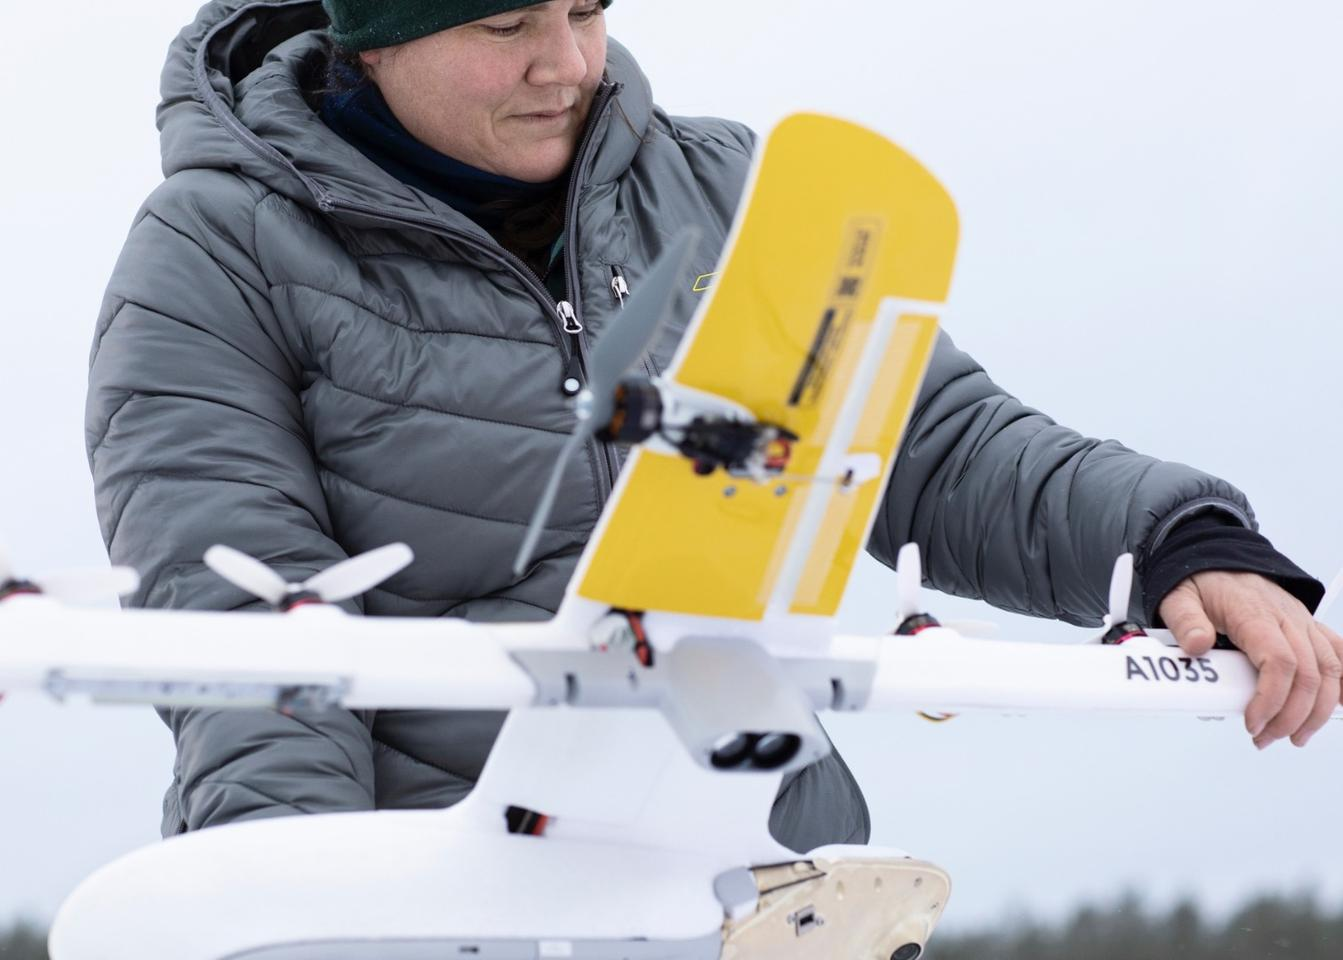 The Wing package delivery drone has a 1 meter wingspan, can carry up to 1.5 kg and has a round trip range of 20 km